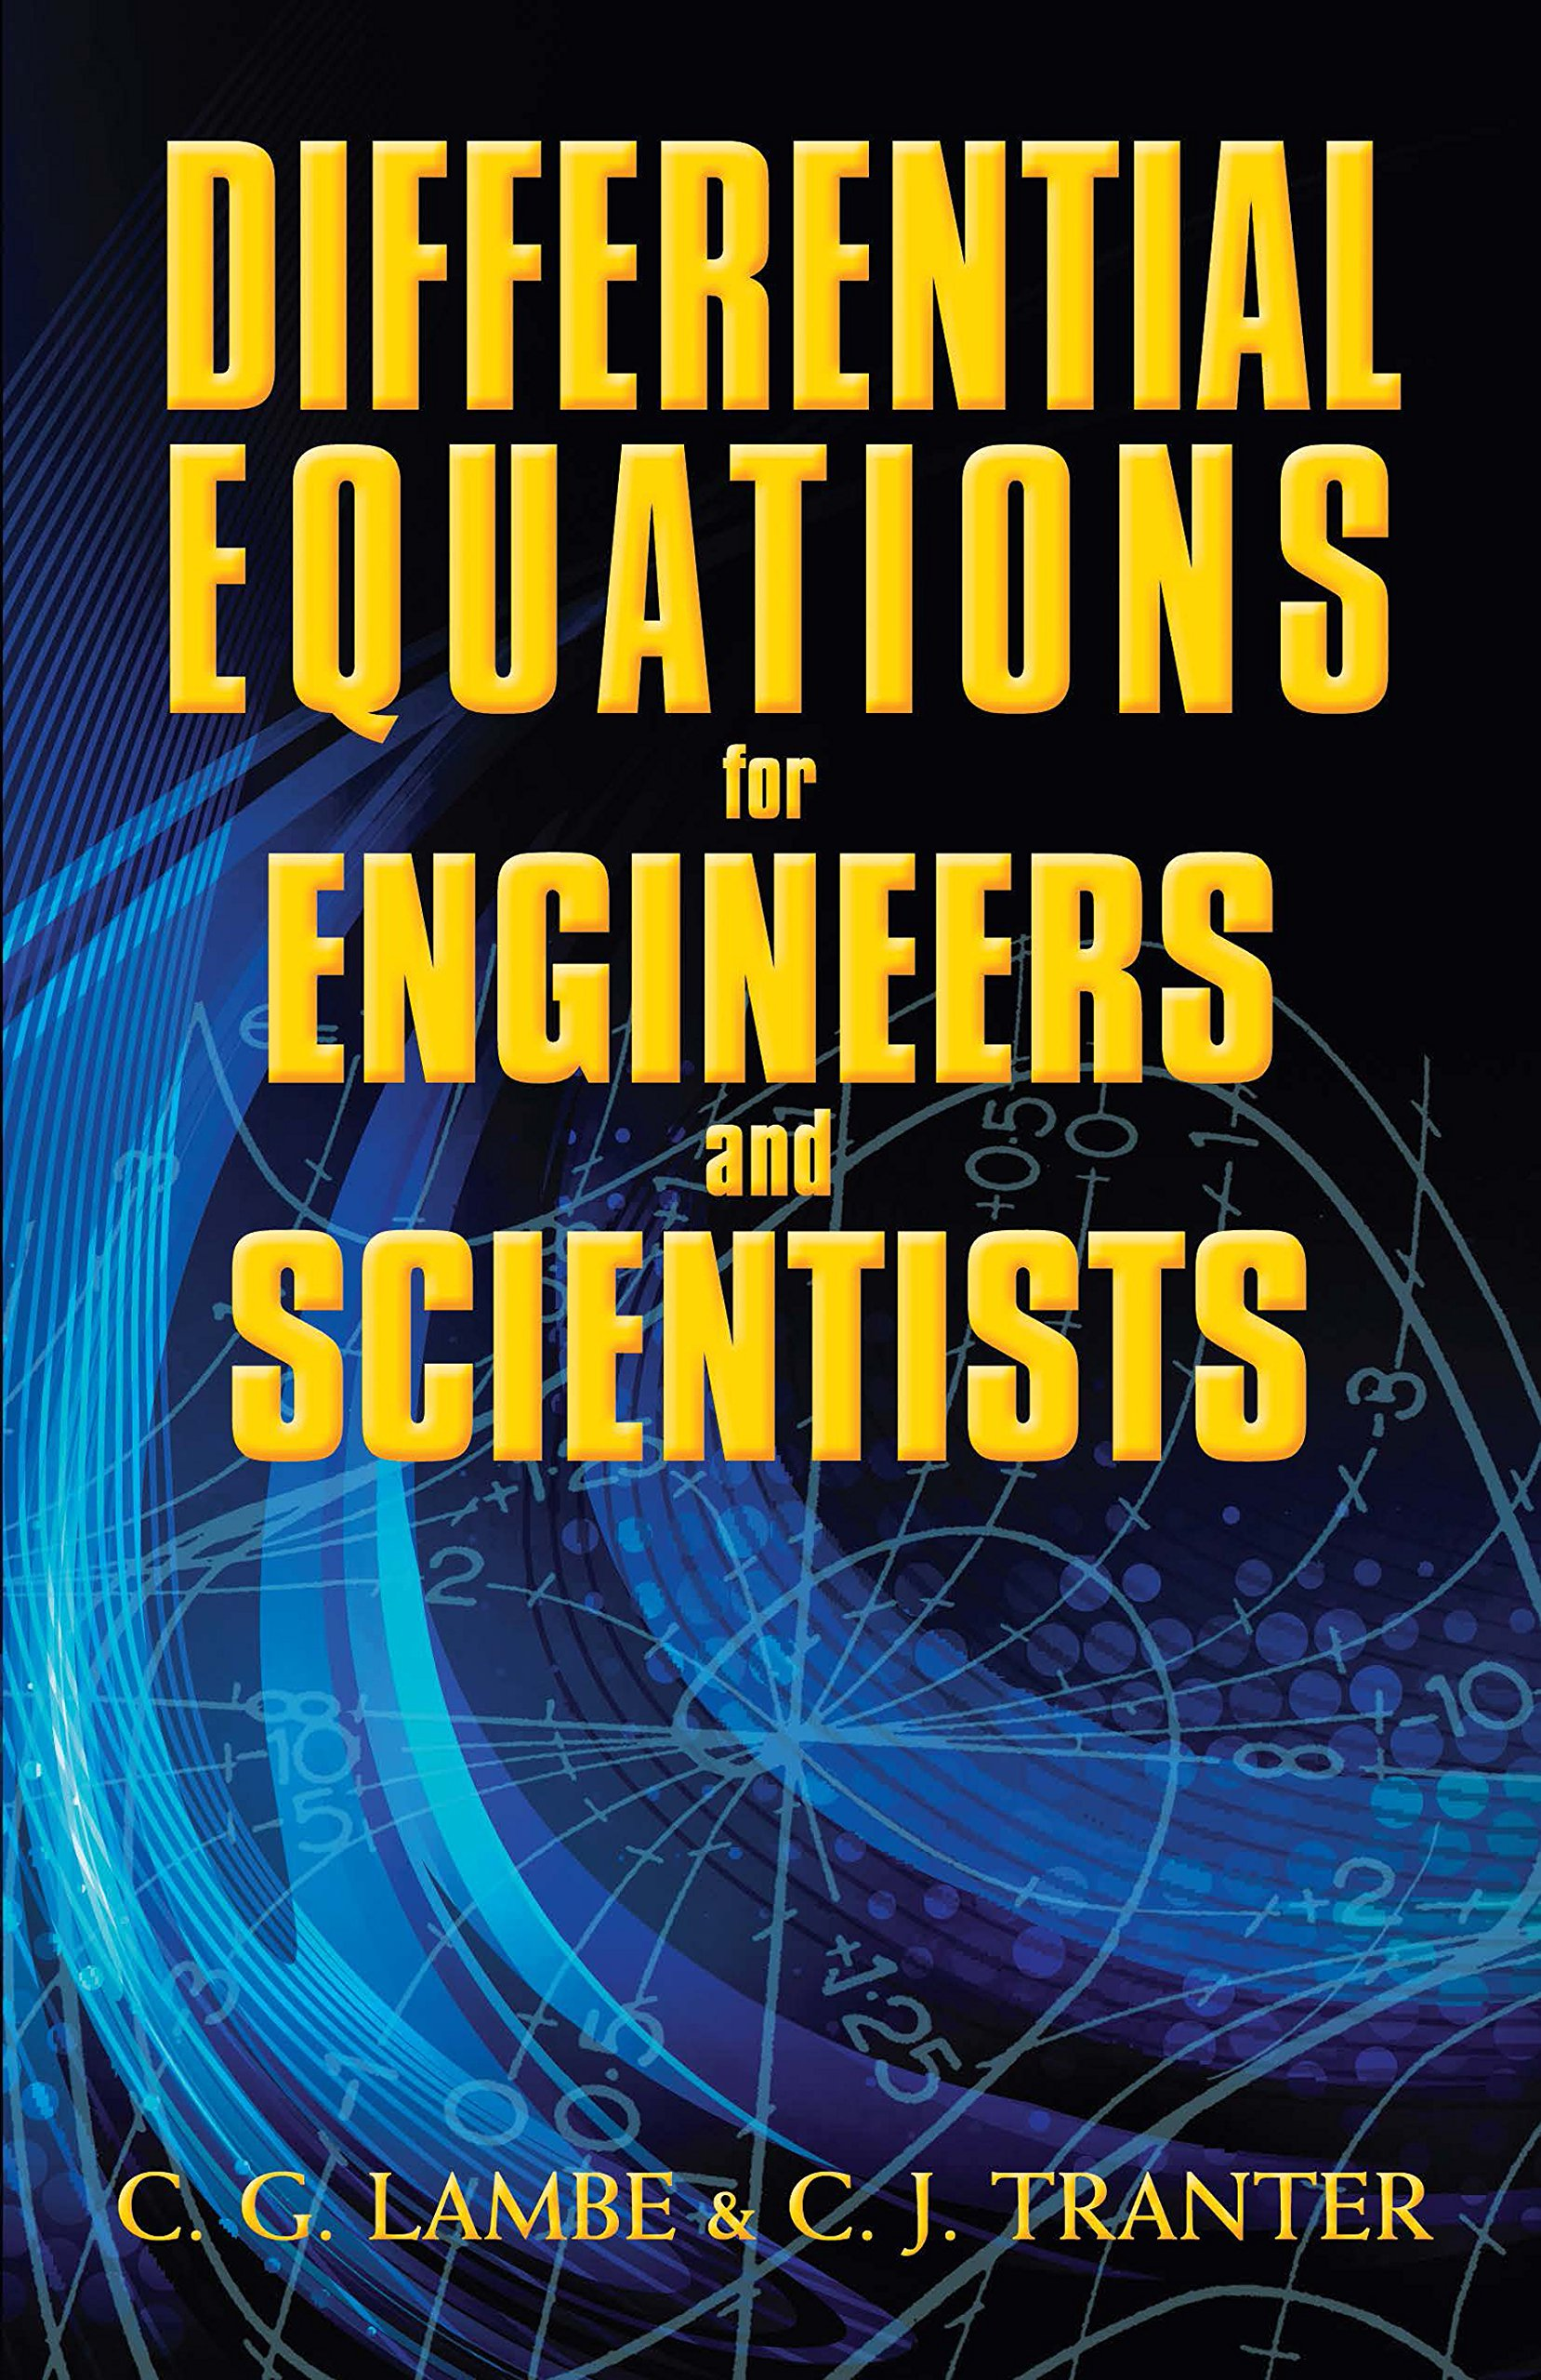 Differential Equations for Engineers and Scientists (Dover